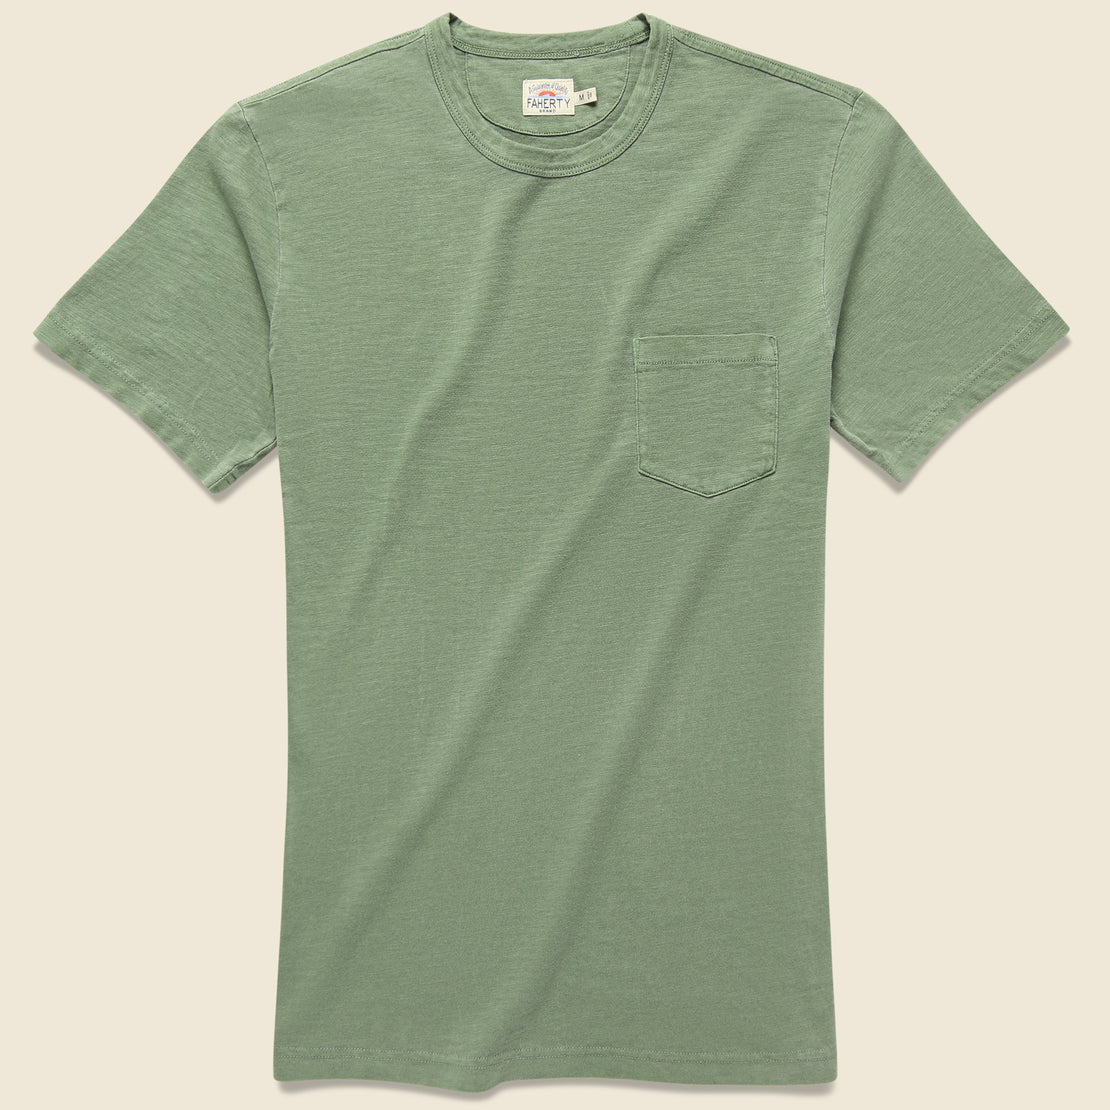 Faherty Garment Dye Pocket Tee - Spring Olive